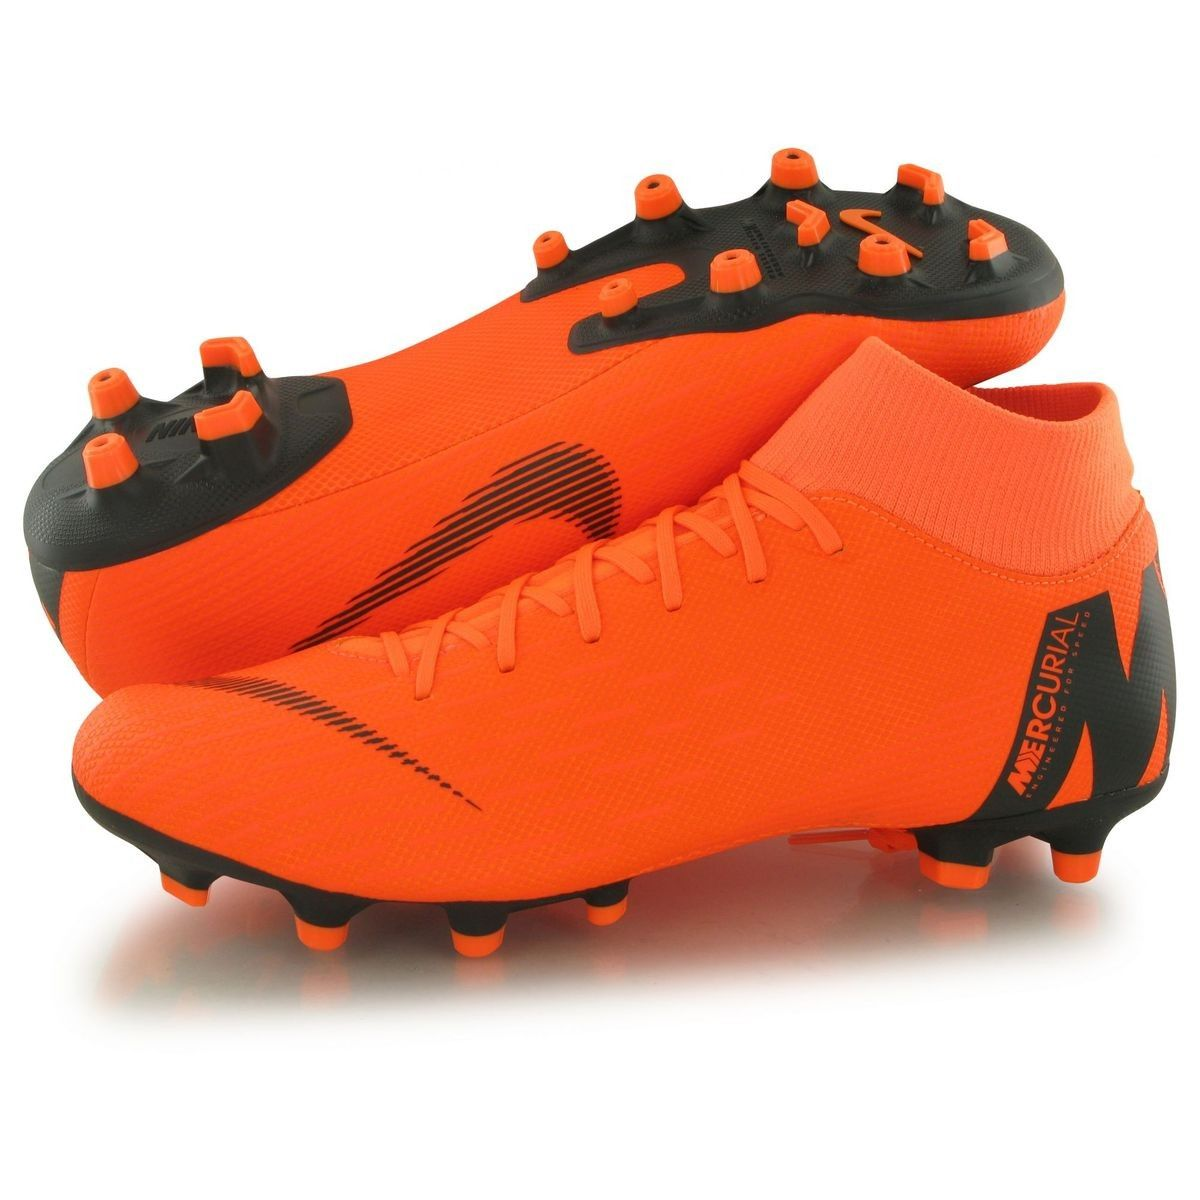 Chaussures Superply 6 Academy Mg Taille : 45 12;42;43;44